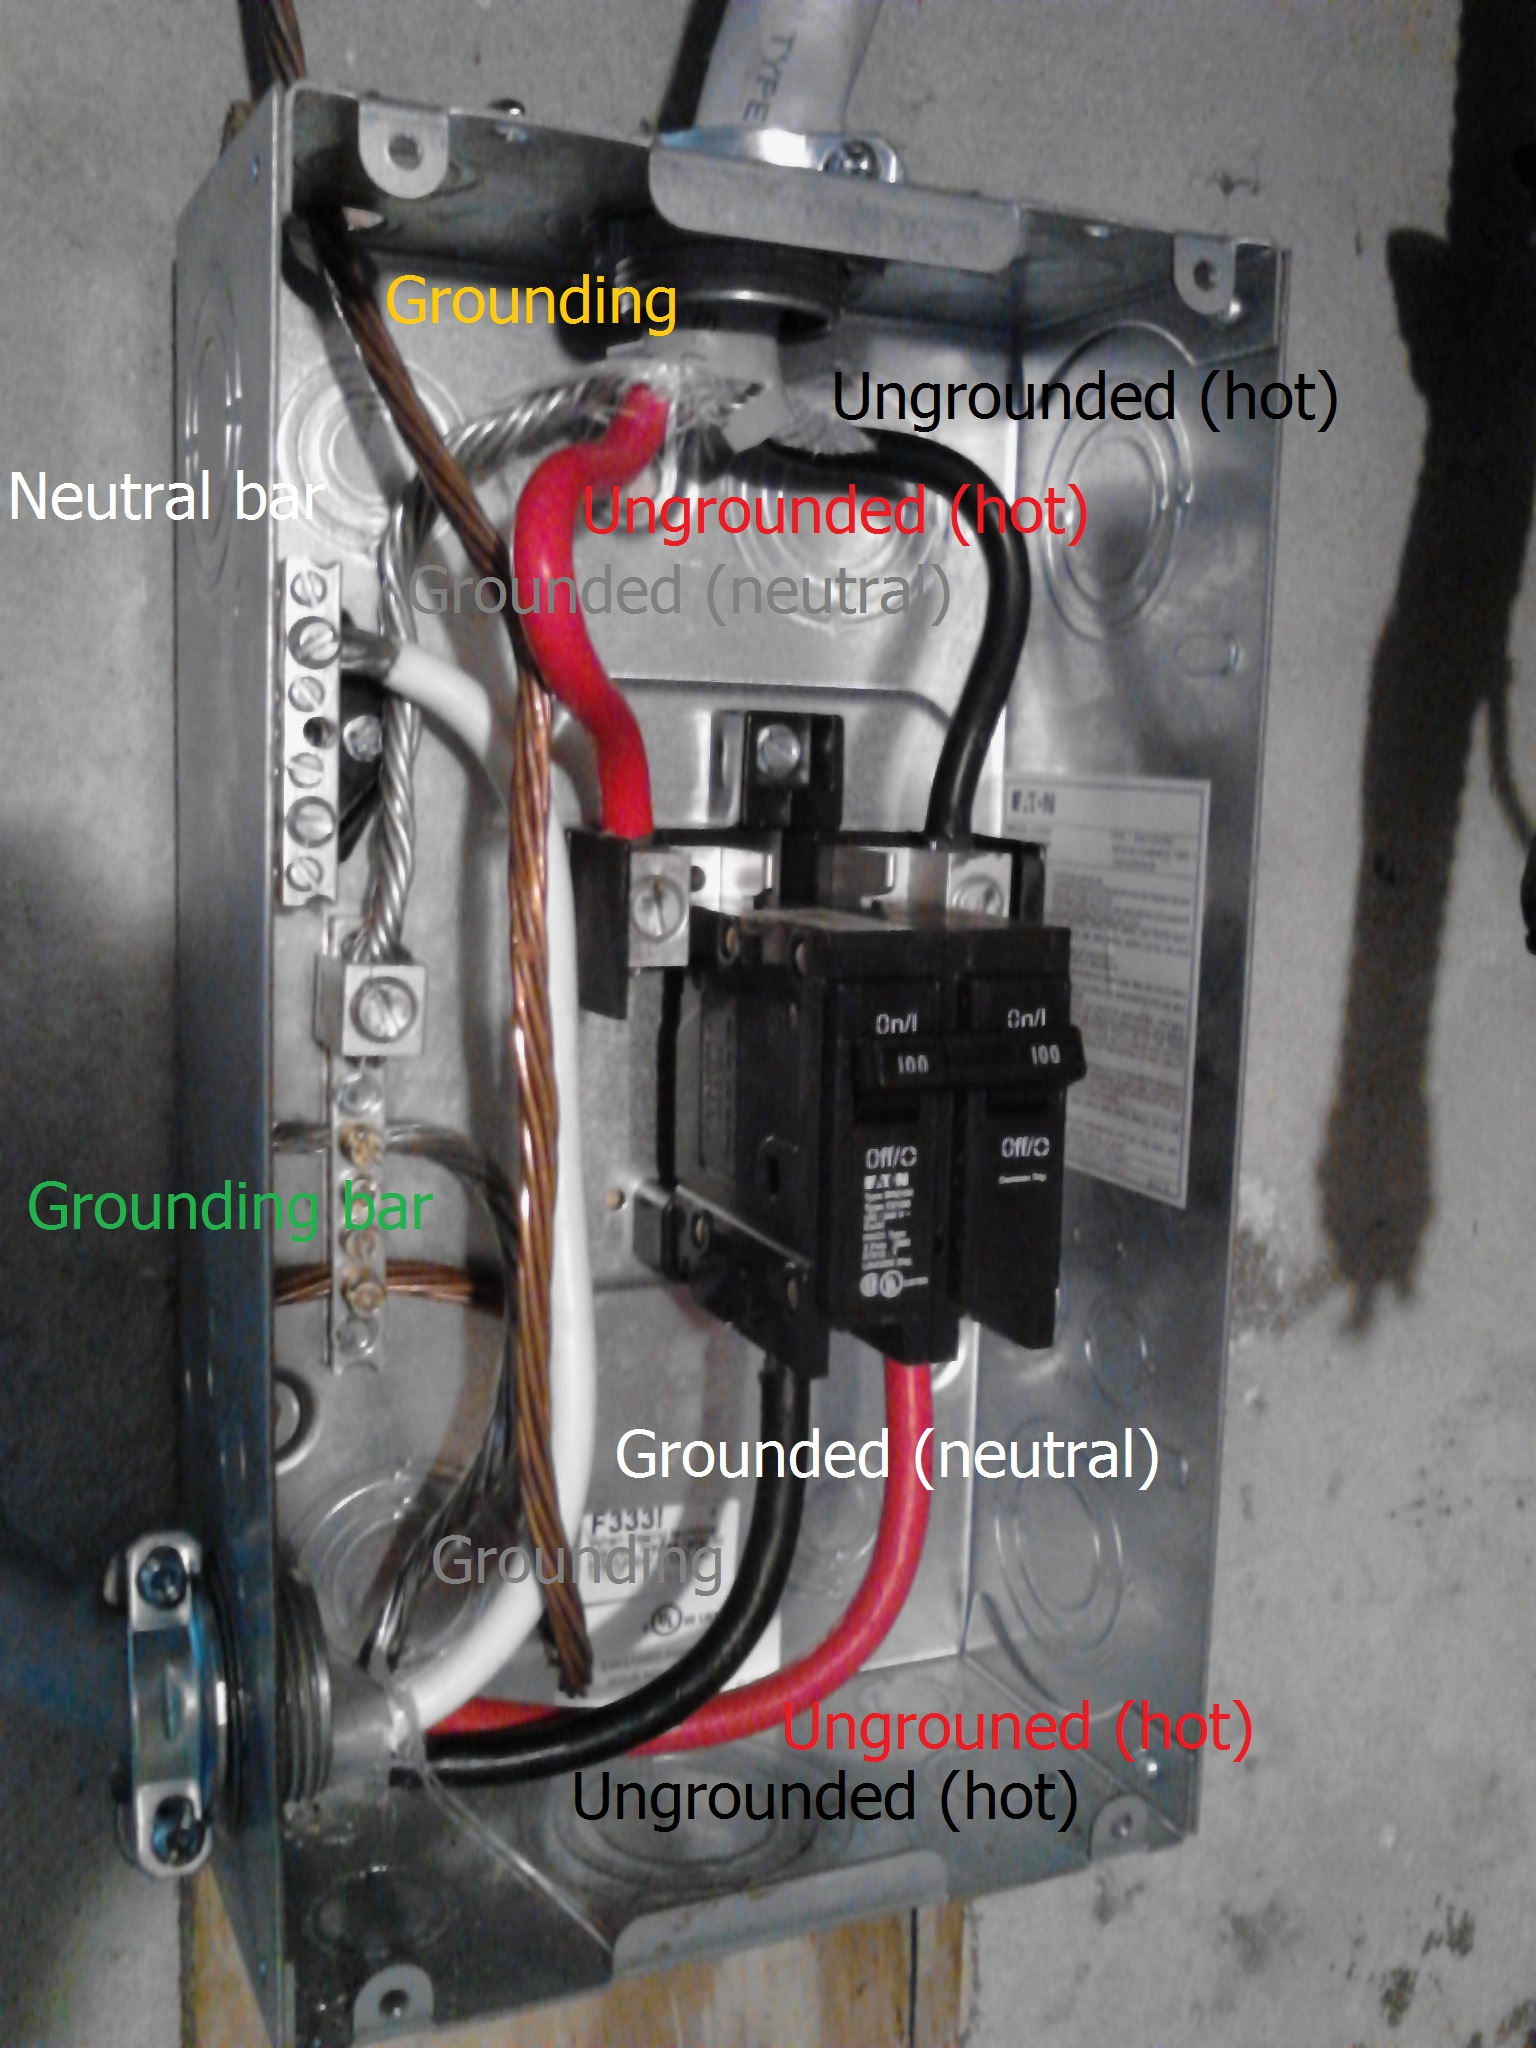 hight resolution of wiring a disconnect box everything wiring diagram rh 5 skillformation de ac disconnect wiring diagram ac disconnect box wiring